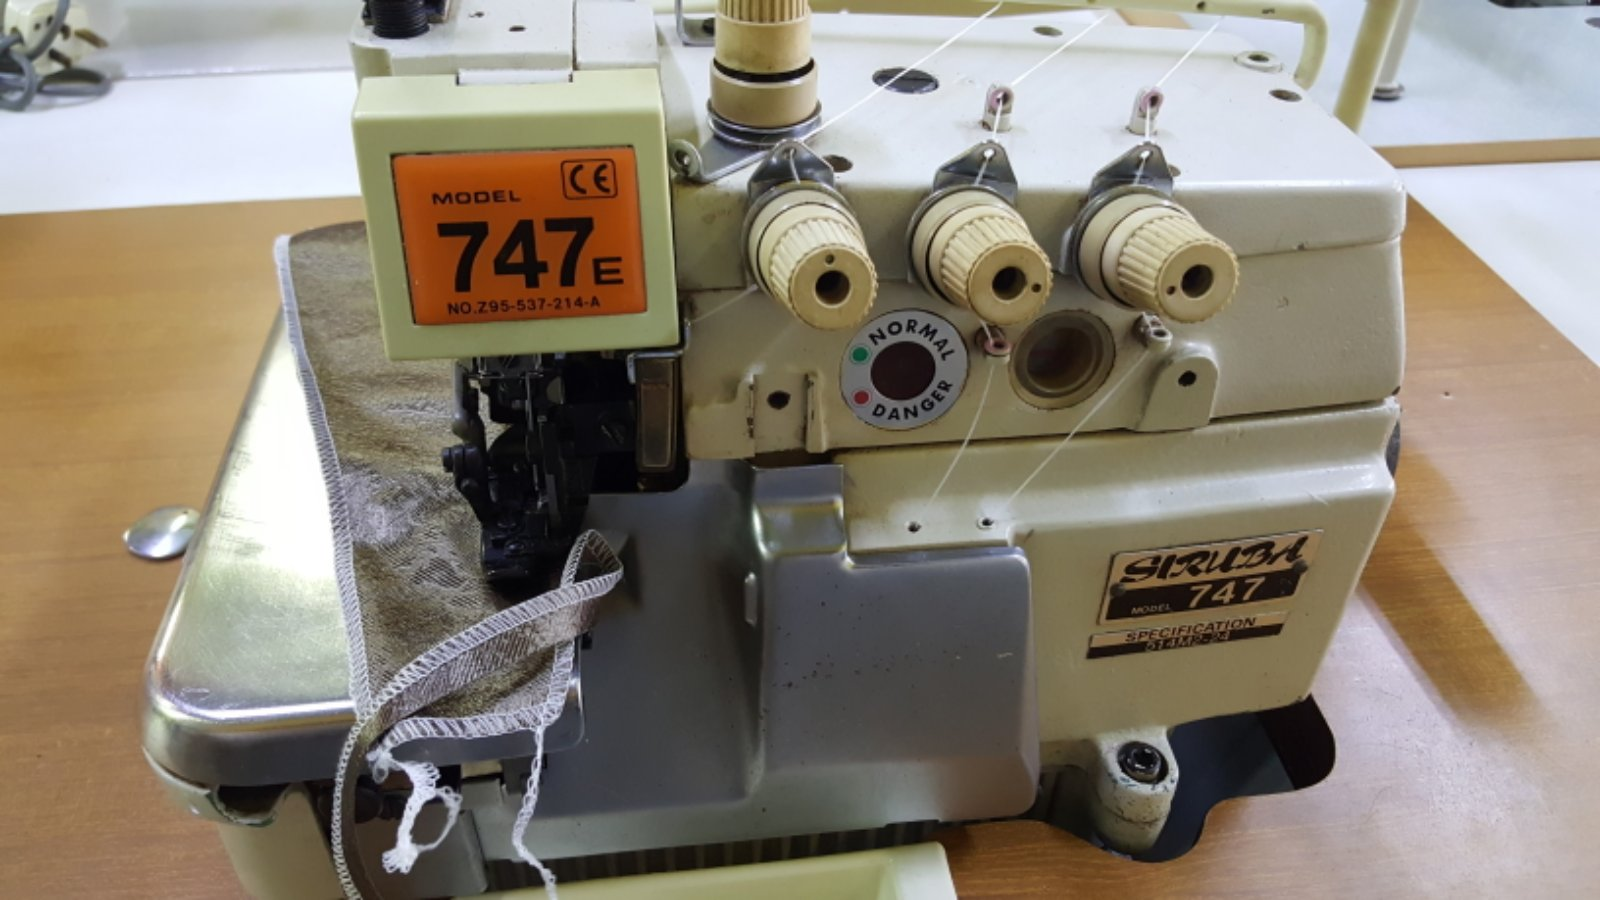 2nd Siruba Overlock Sewing Machine